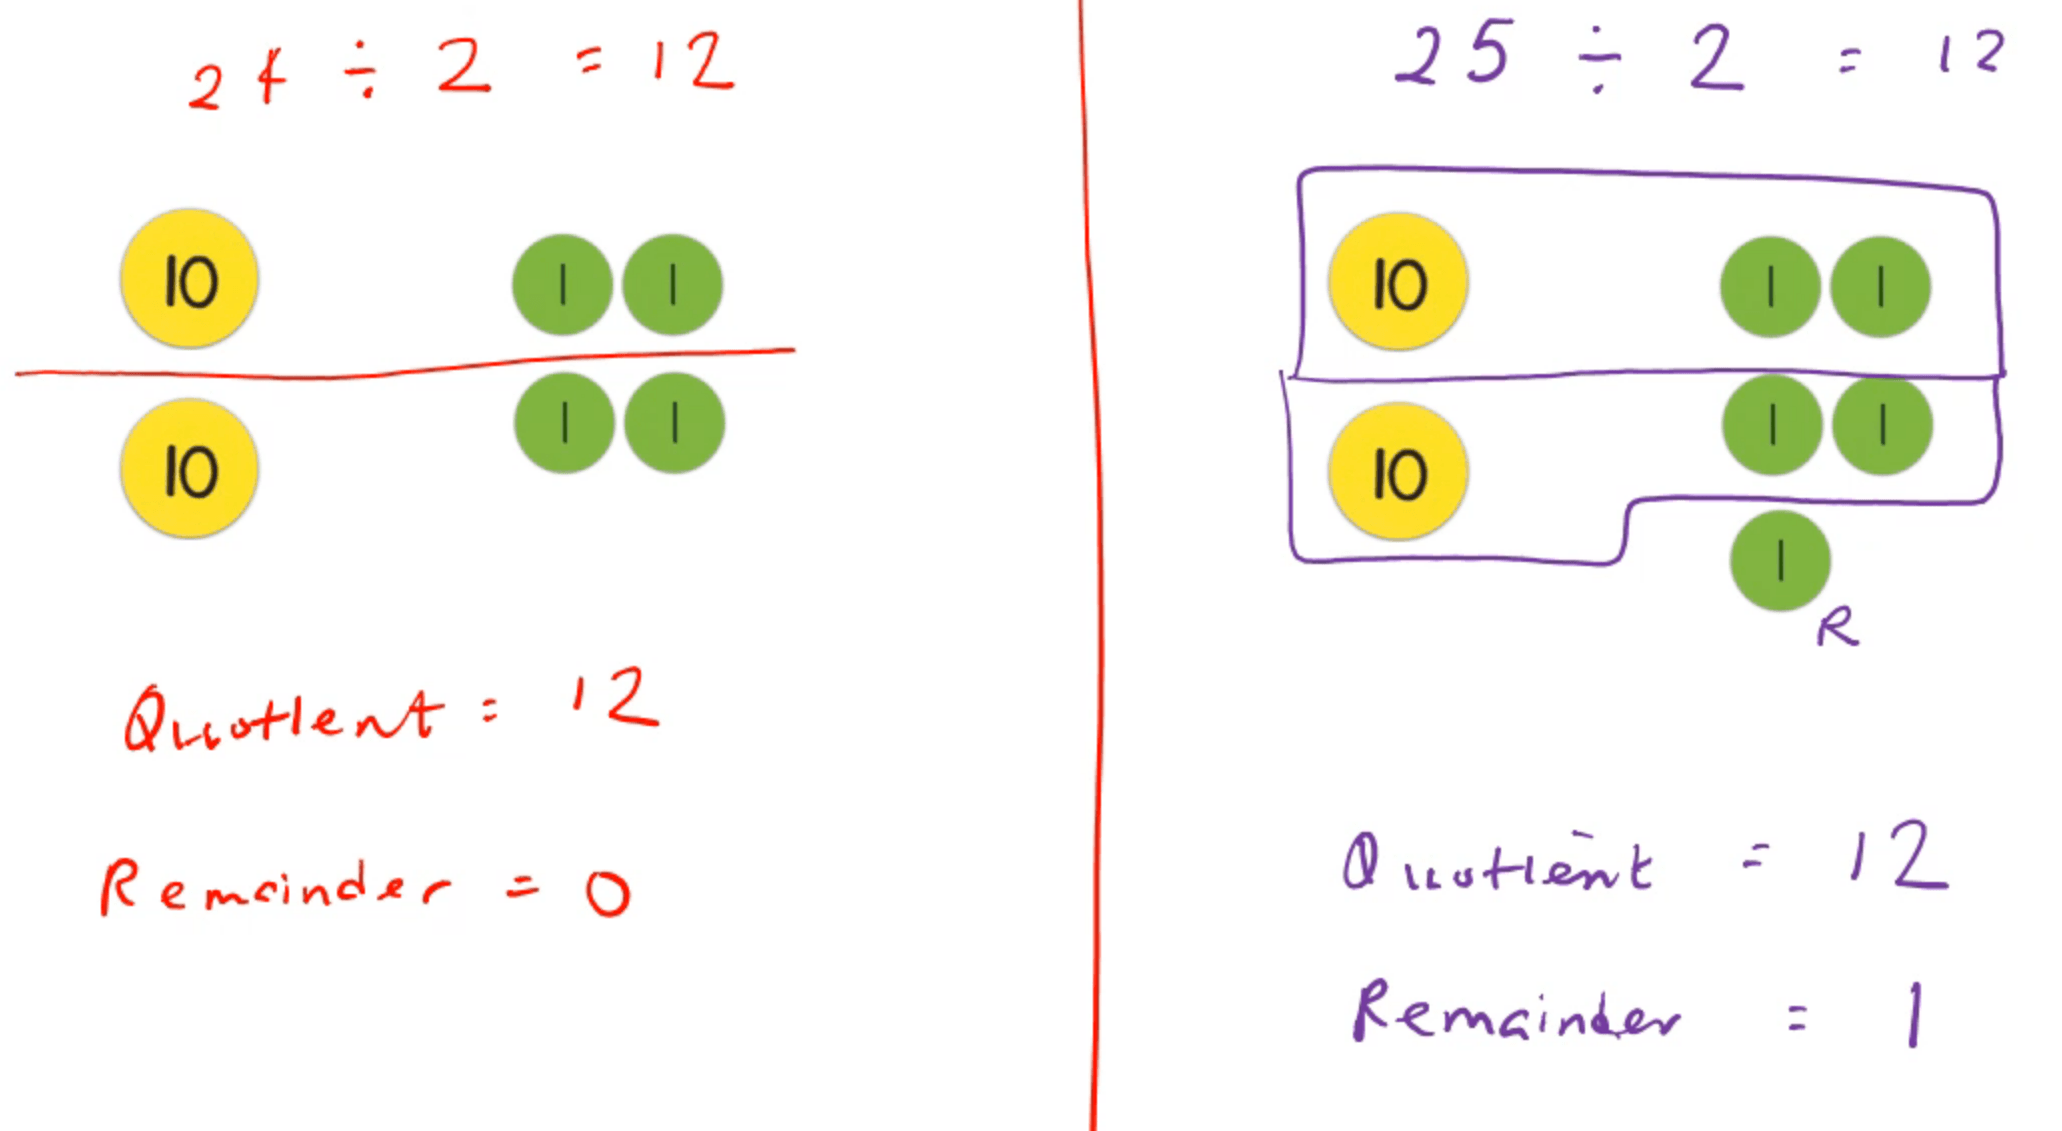 division with remiander - quotient and remainder